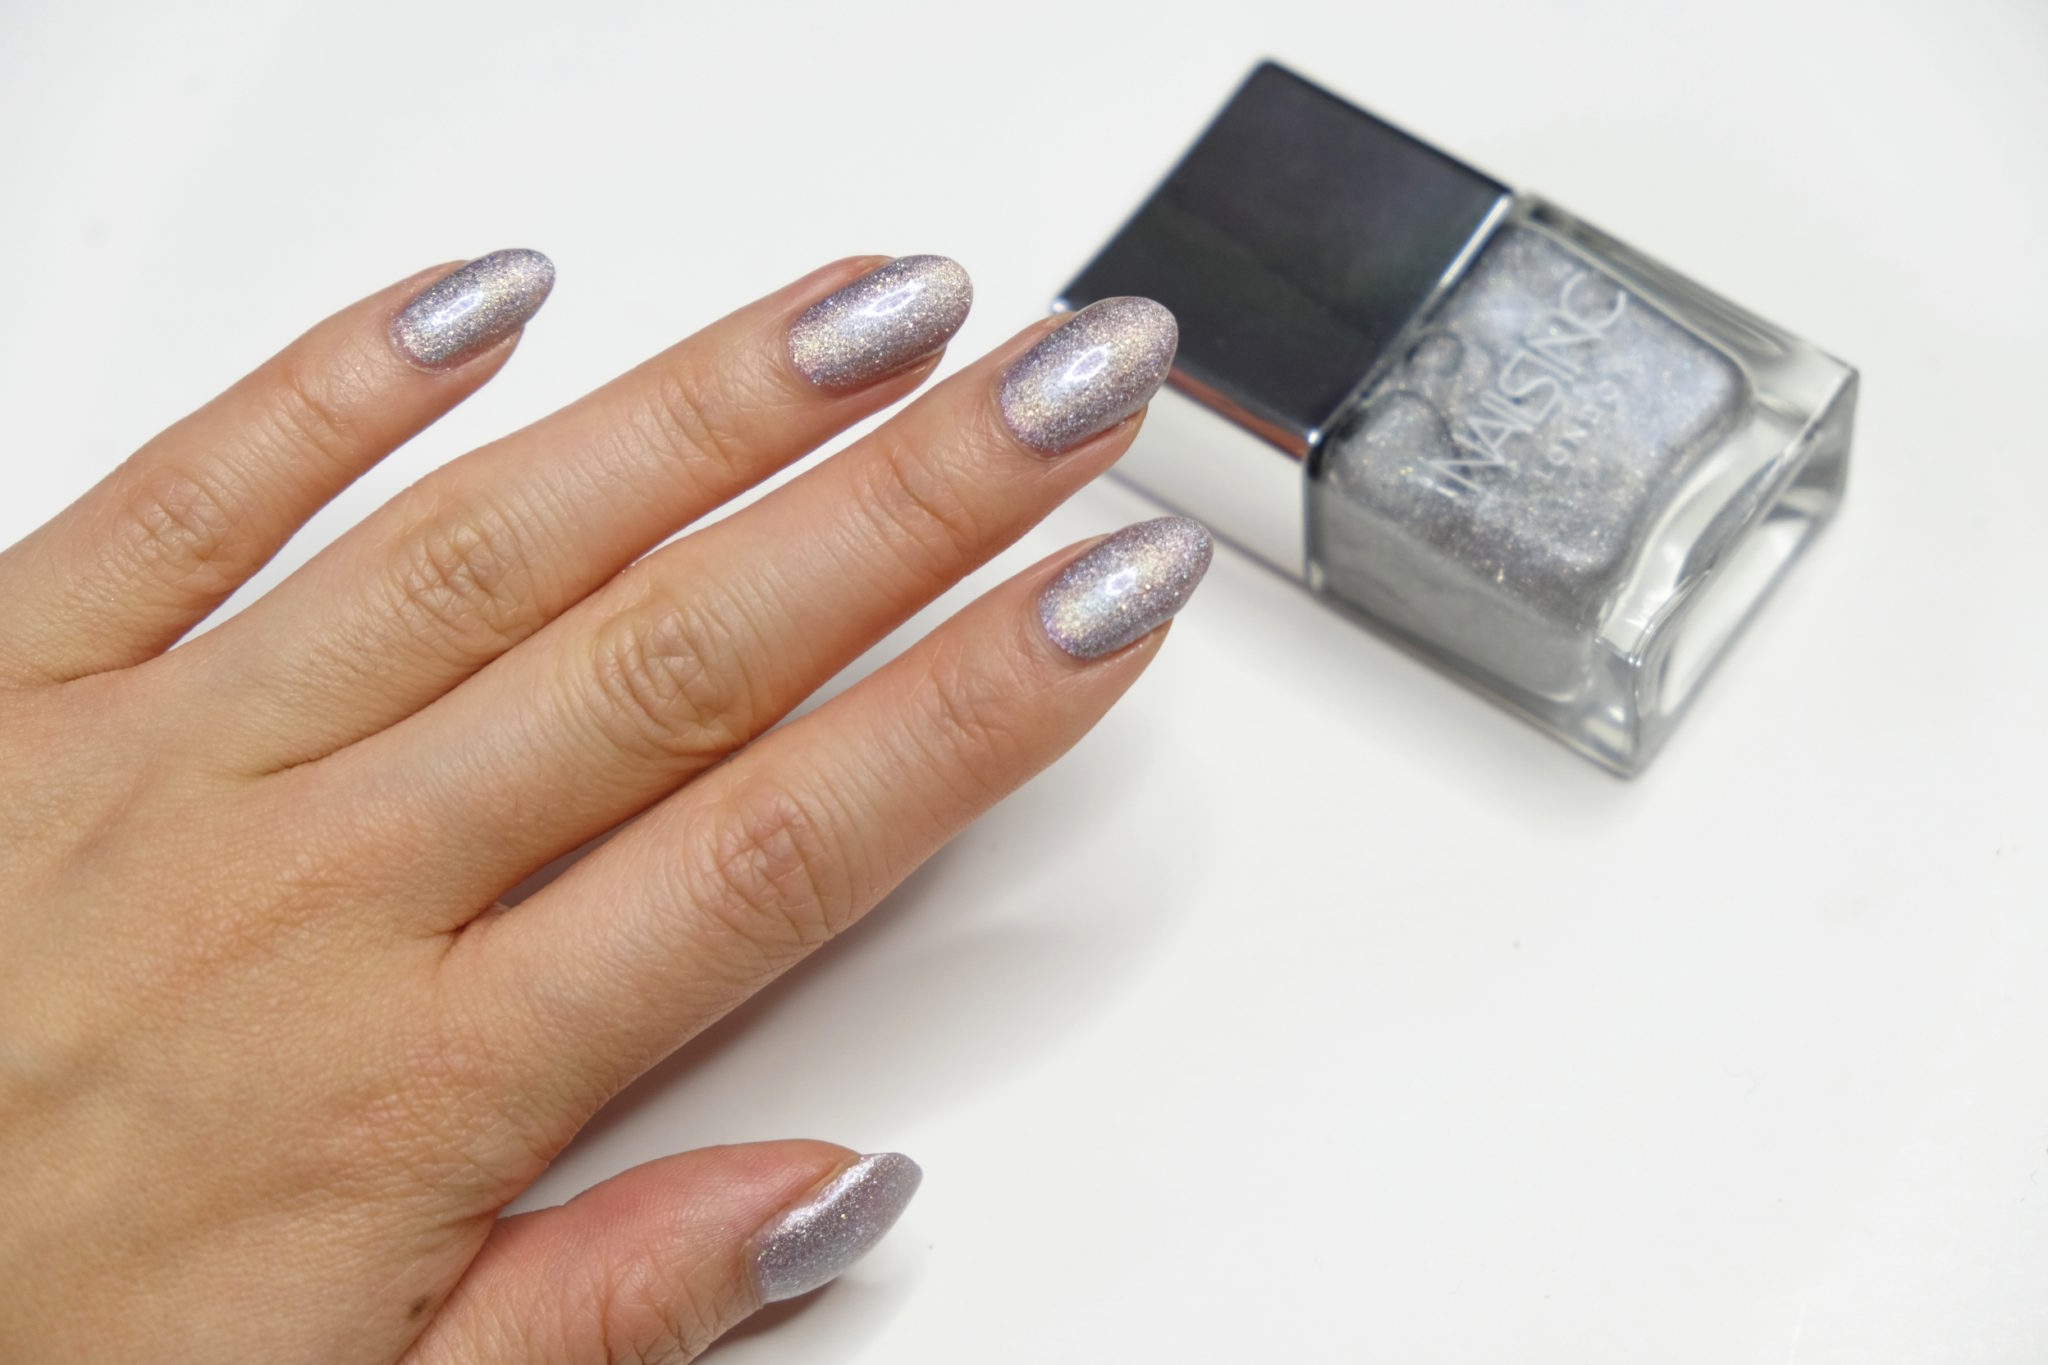 Nails Inc Holographic Holler Graphic Rocket Fuel Swatch Review